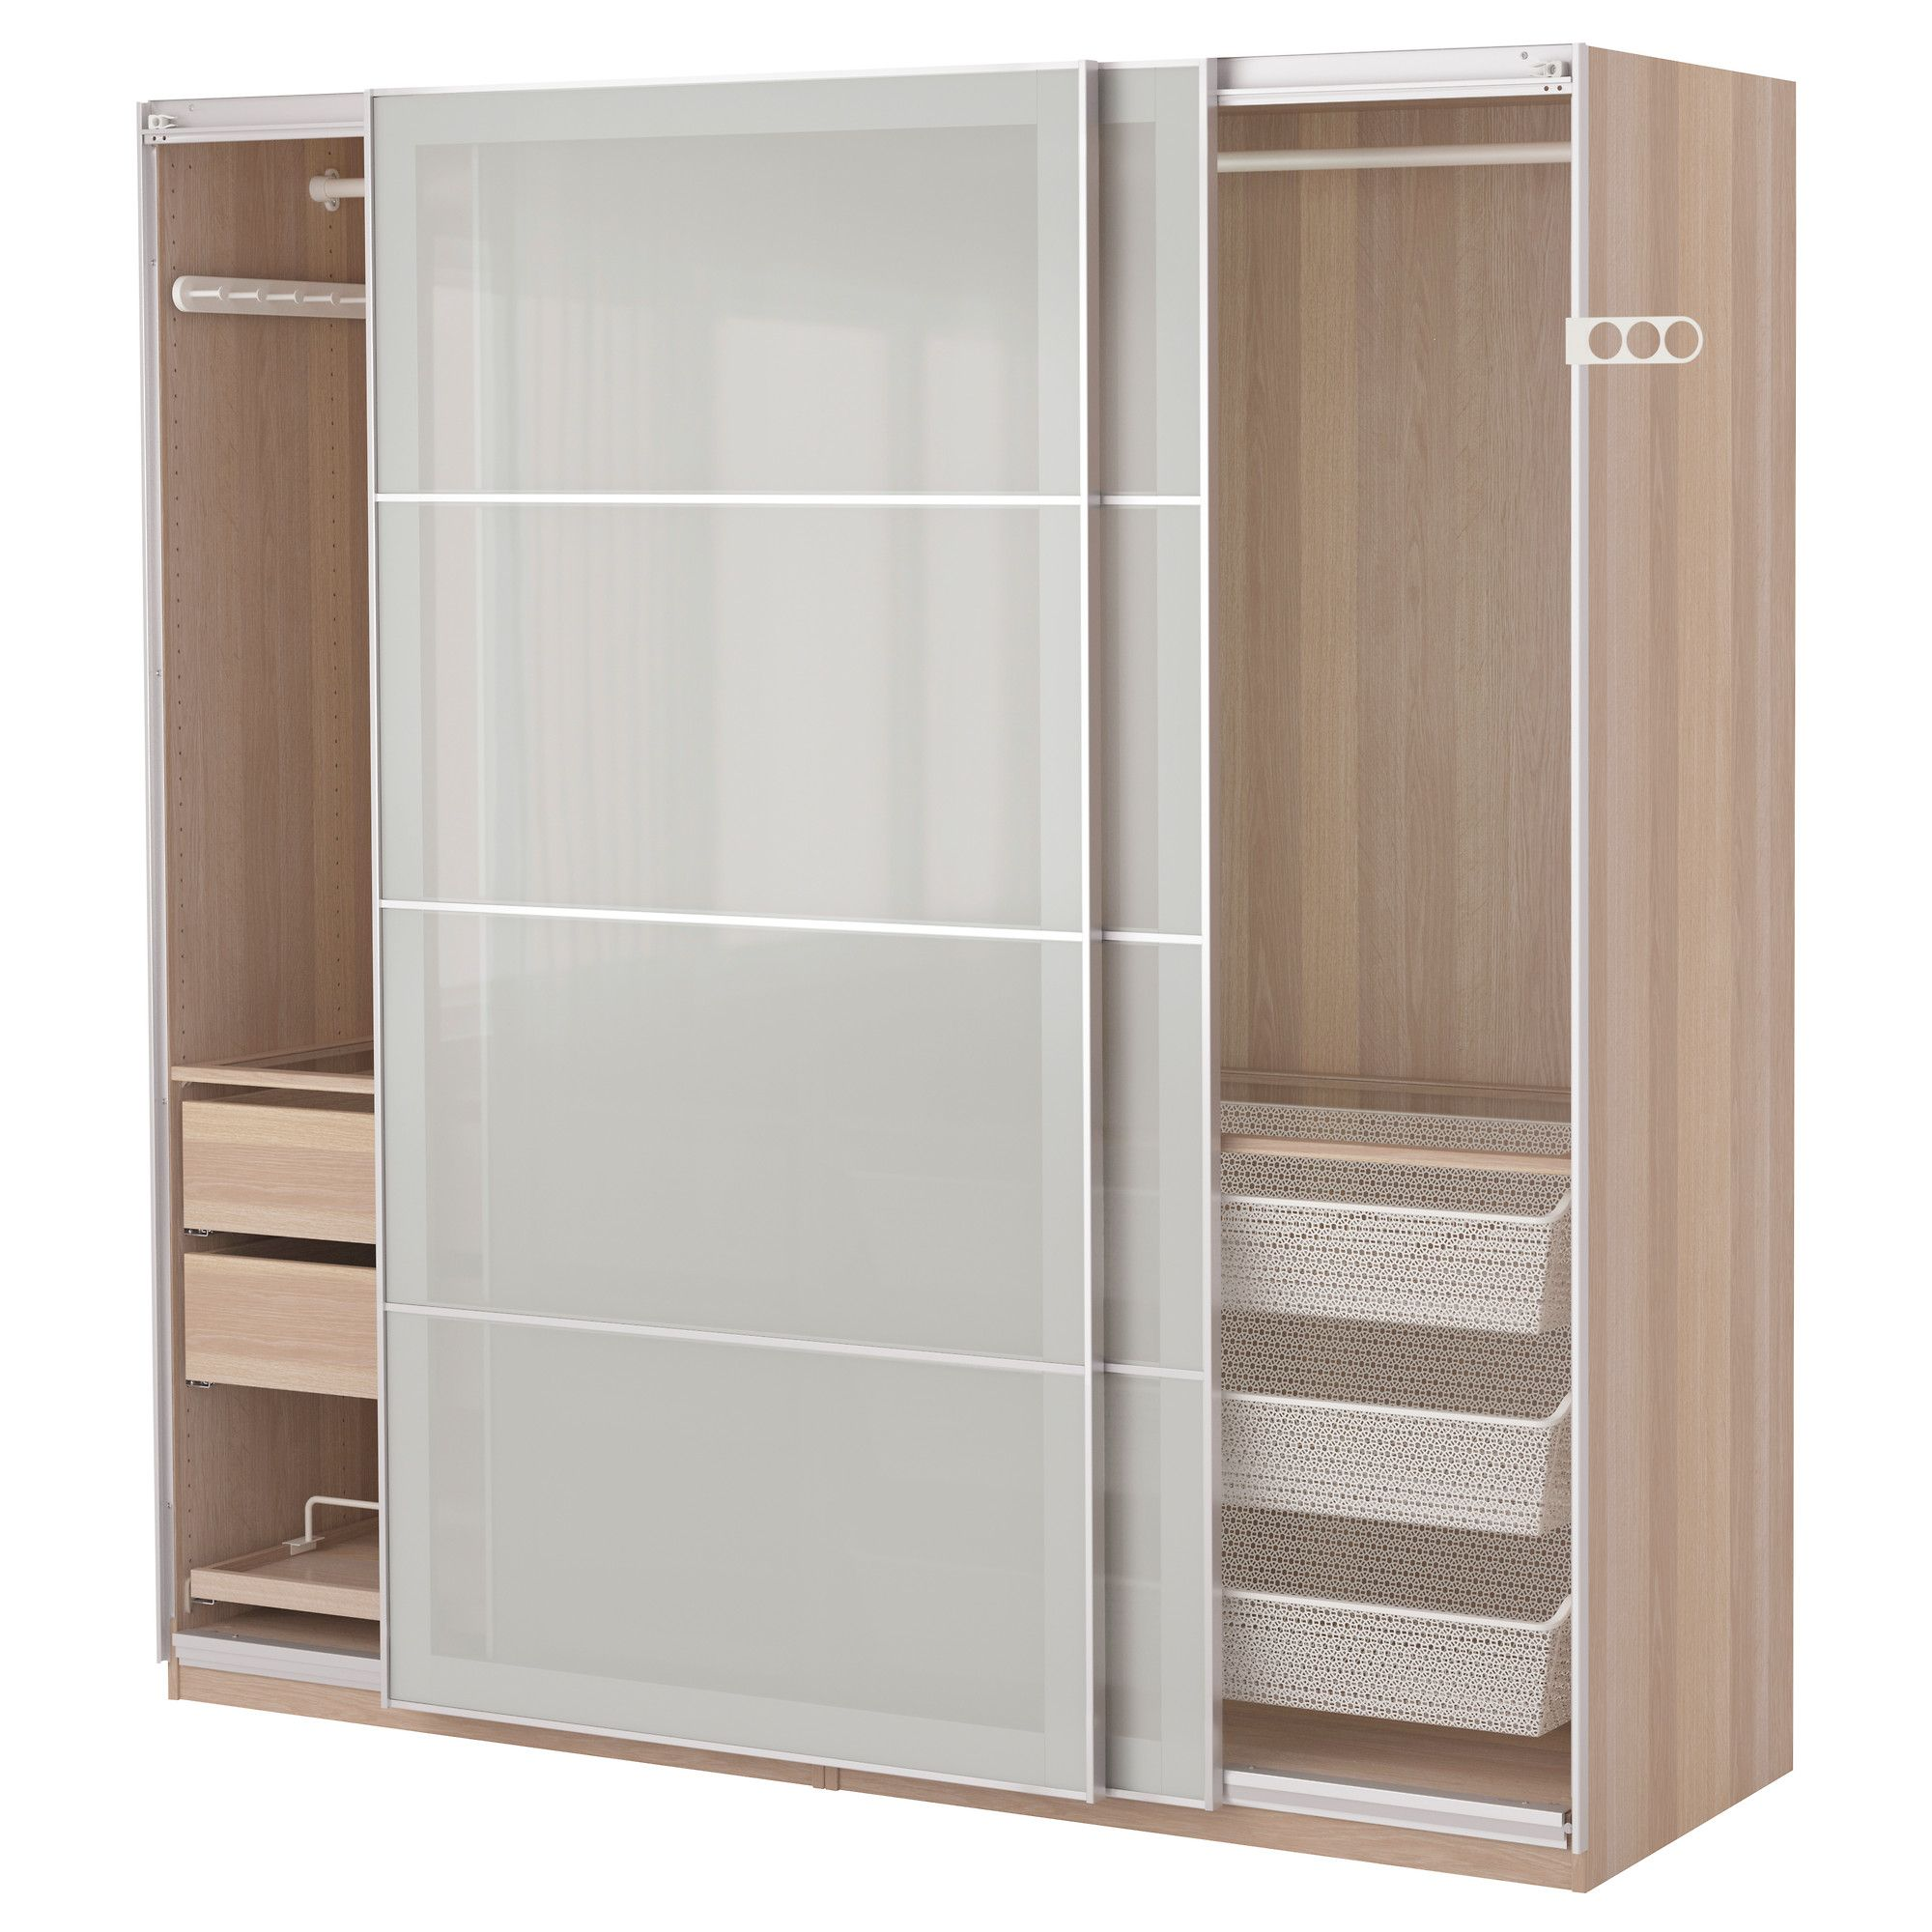 Pax Sekken Pax Wardrobe Ikea Kitchen Ideas Pinterest Pax